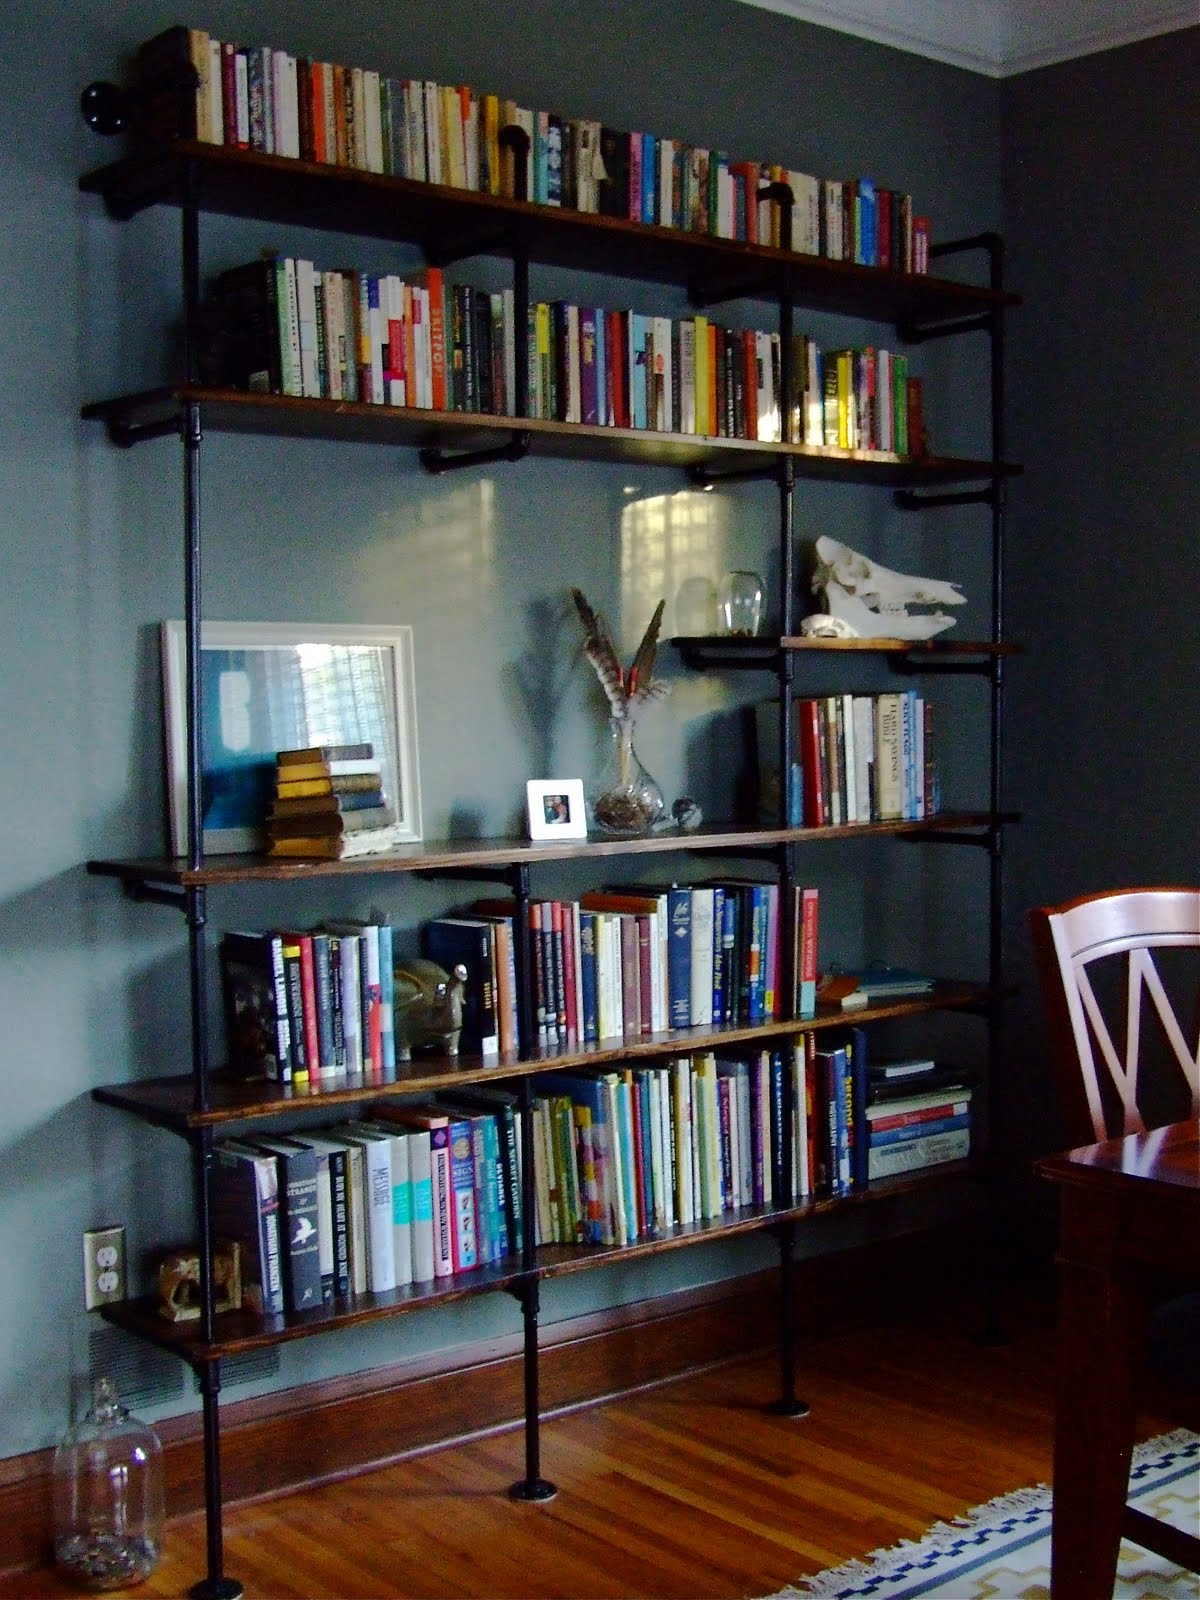 bookshelf pipe plumbing industrial bookshelves pretty feel shelf yet another need wood pipes cooler sure than